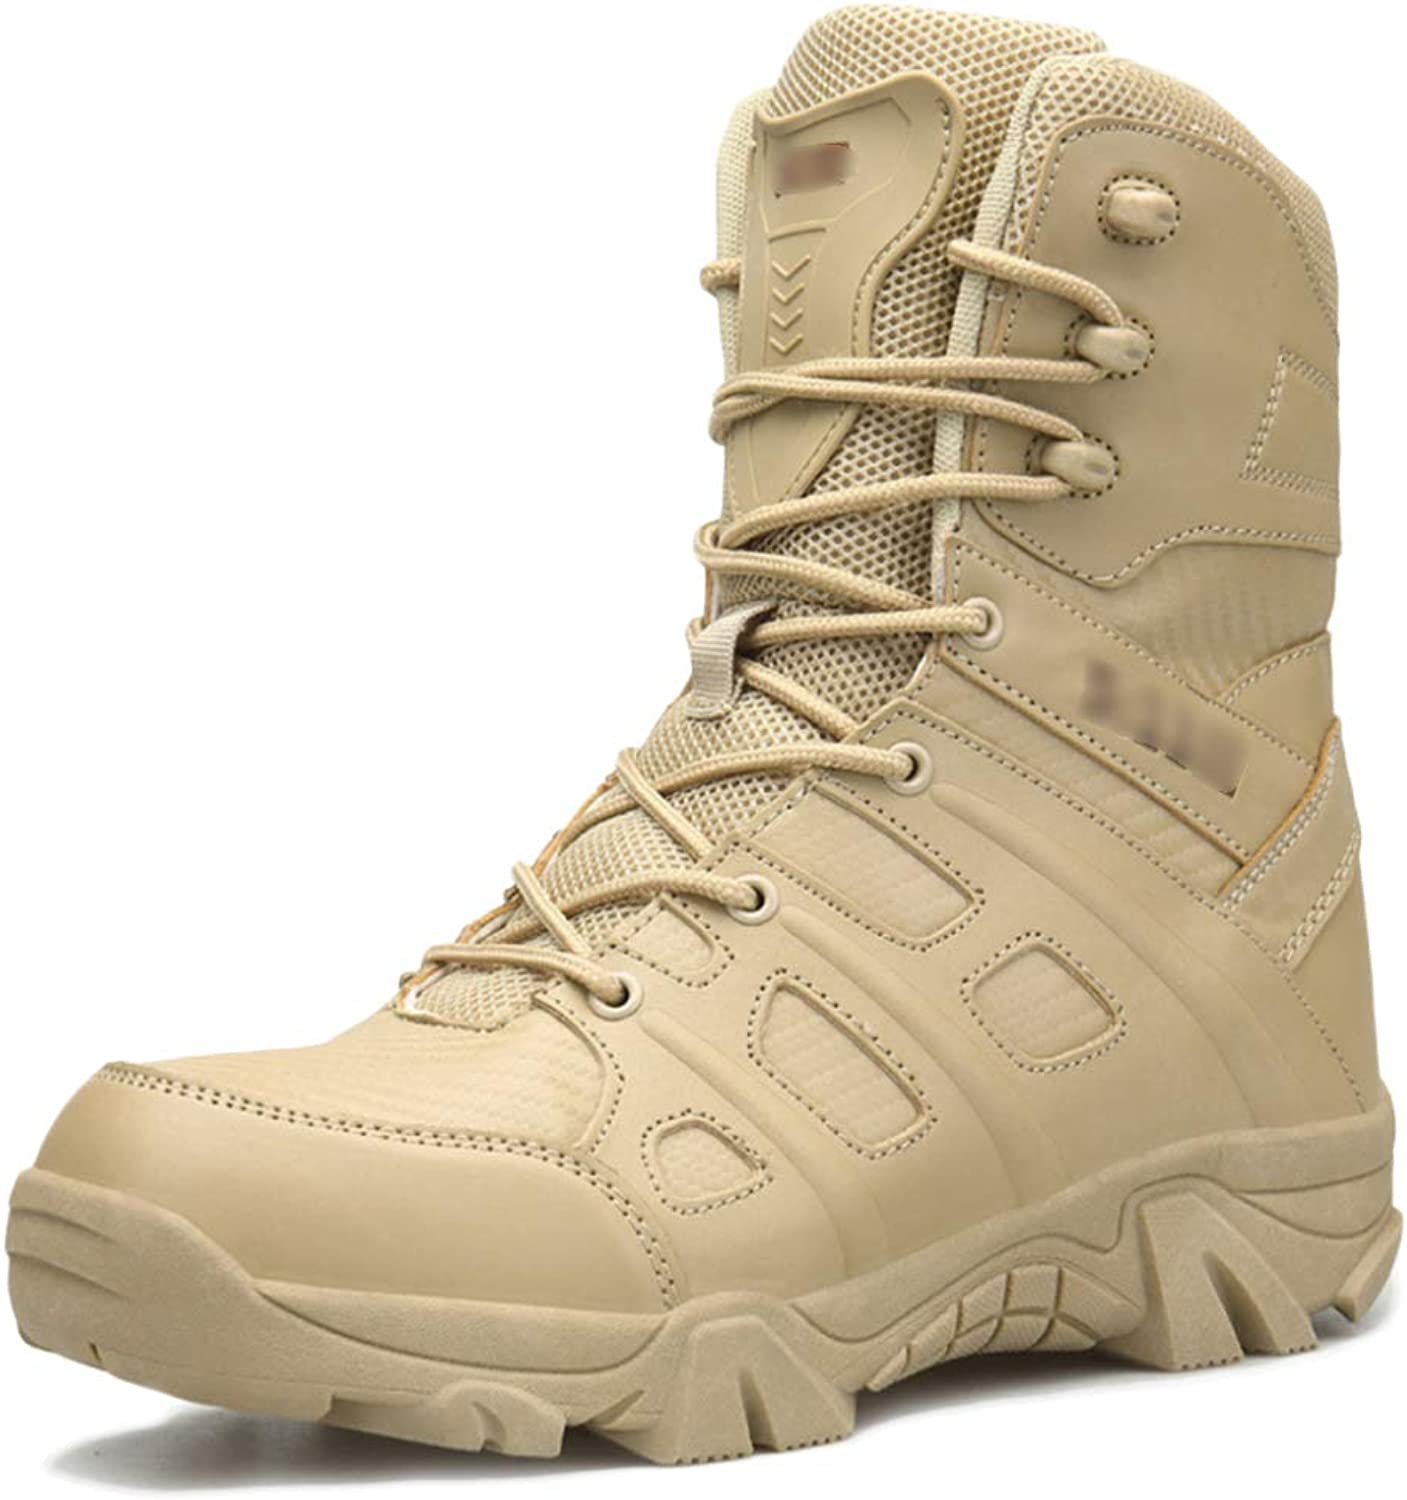 Mens Lace-ups Desert Combat Boots Outdoor Camping Climbing Army Tactical Boots Jungle Hiking High Top Patrol Boots shoes